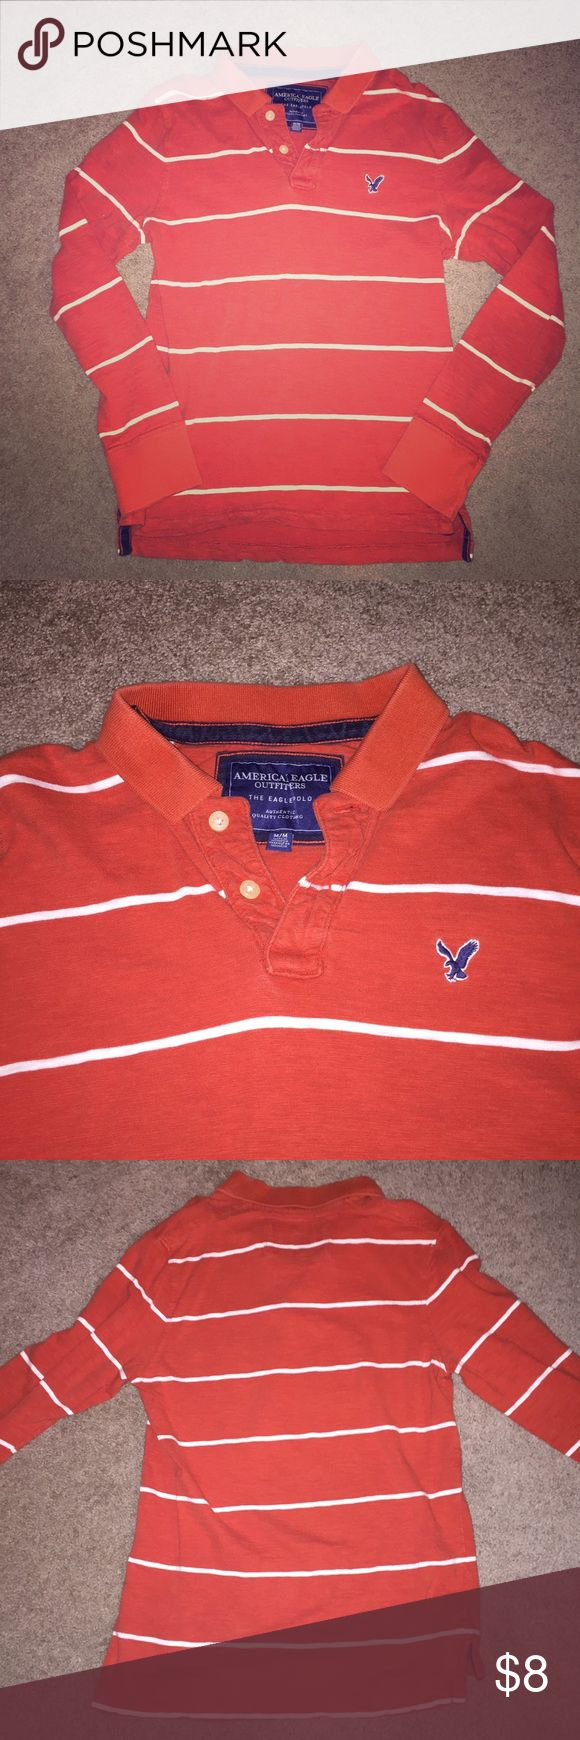 AE Men's Long Sleeve Polo Men's long sleeve orange polo with thin white stripes, relaxed comfy fit! American Eagle Outfitters Shirts Polos